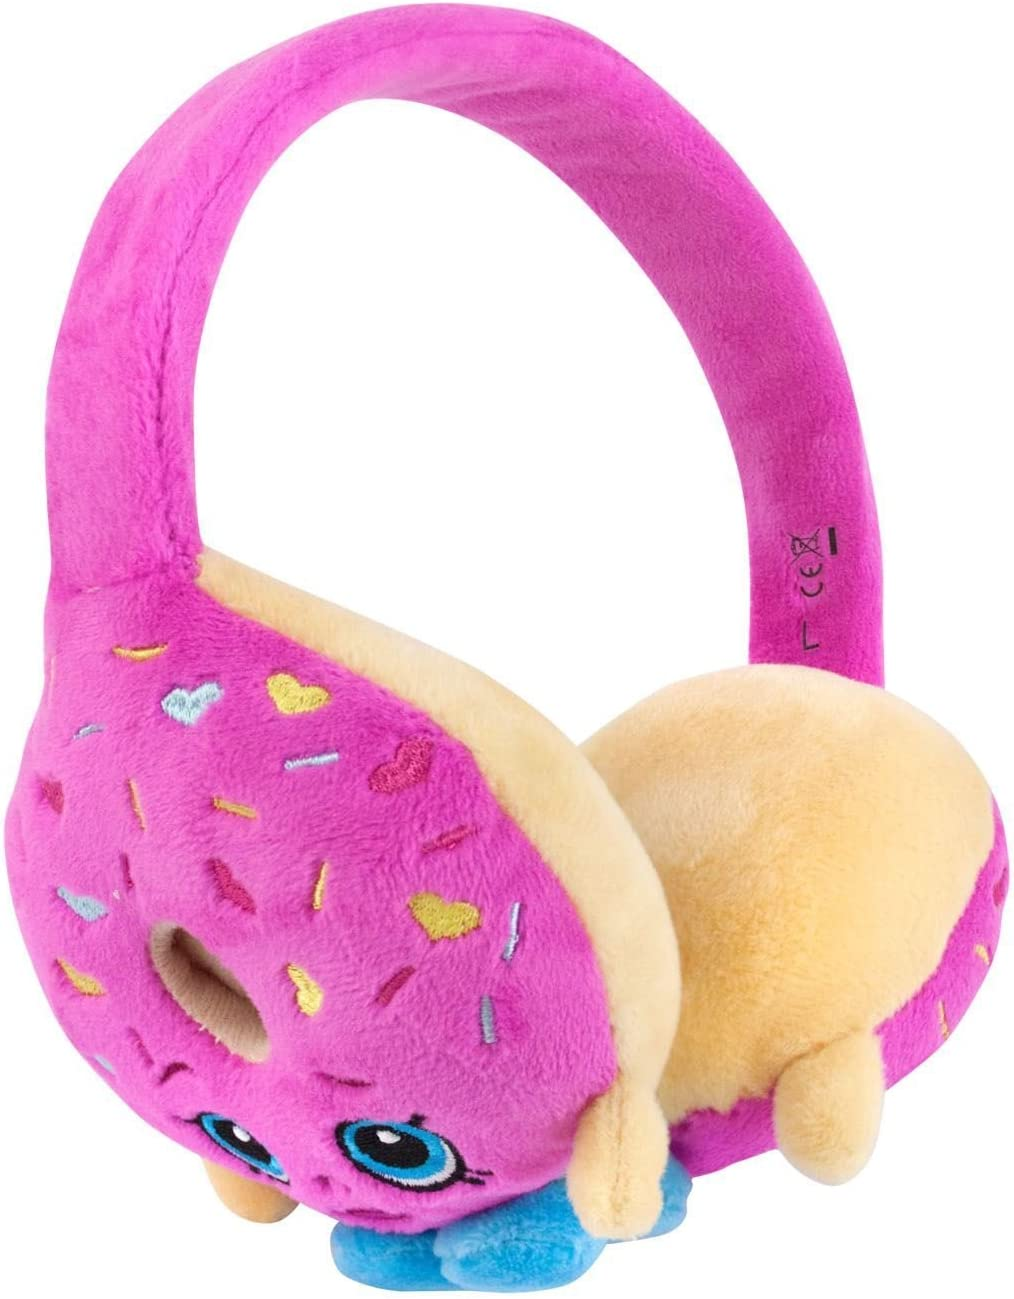 Shopkins D lish Donut Plush Headphones Pink